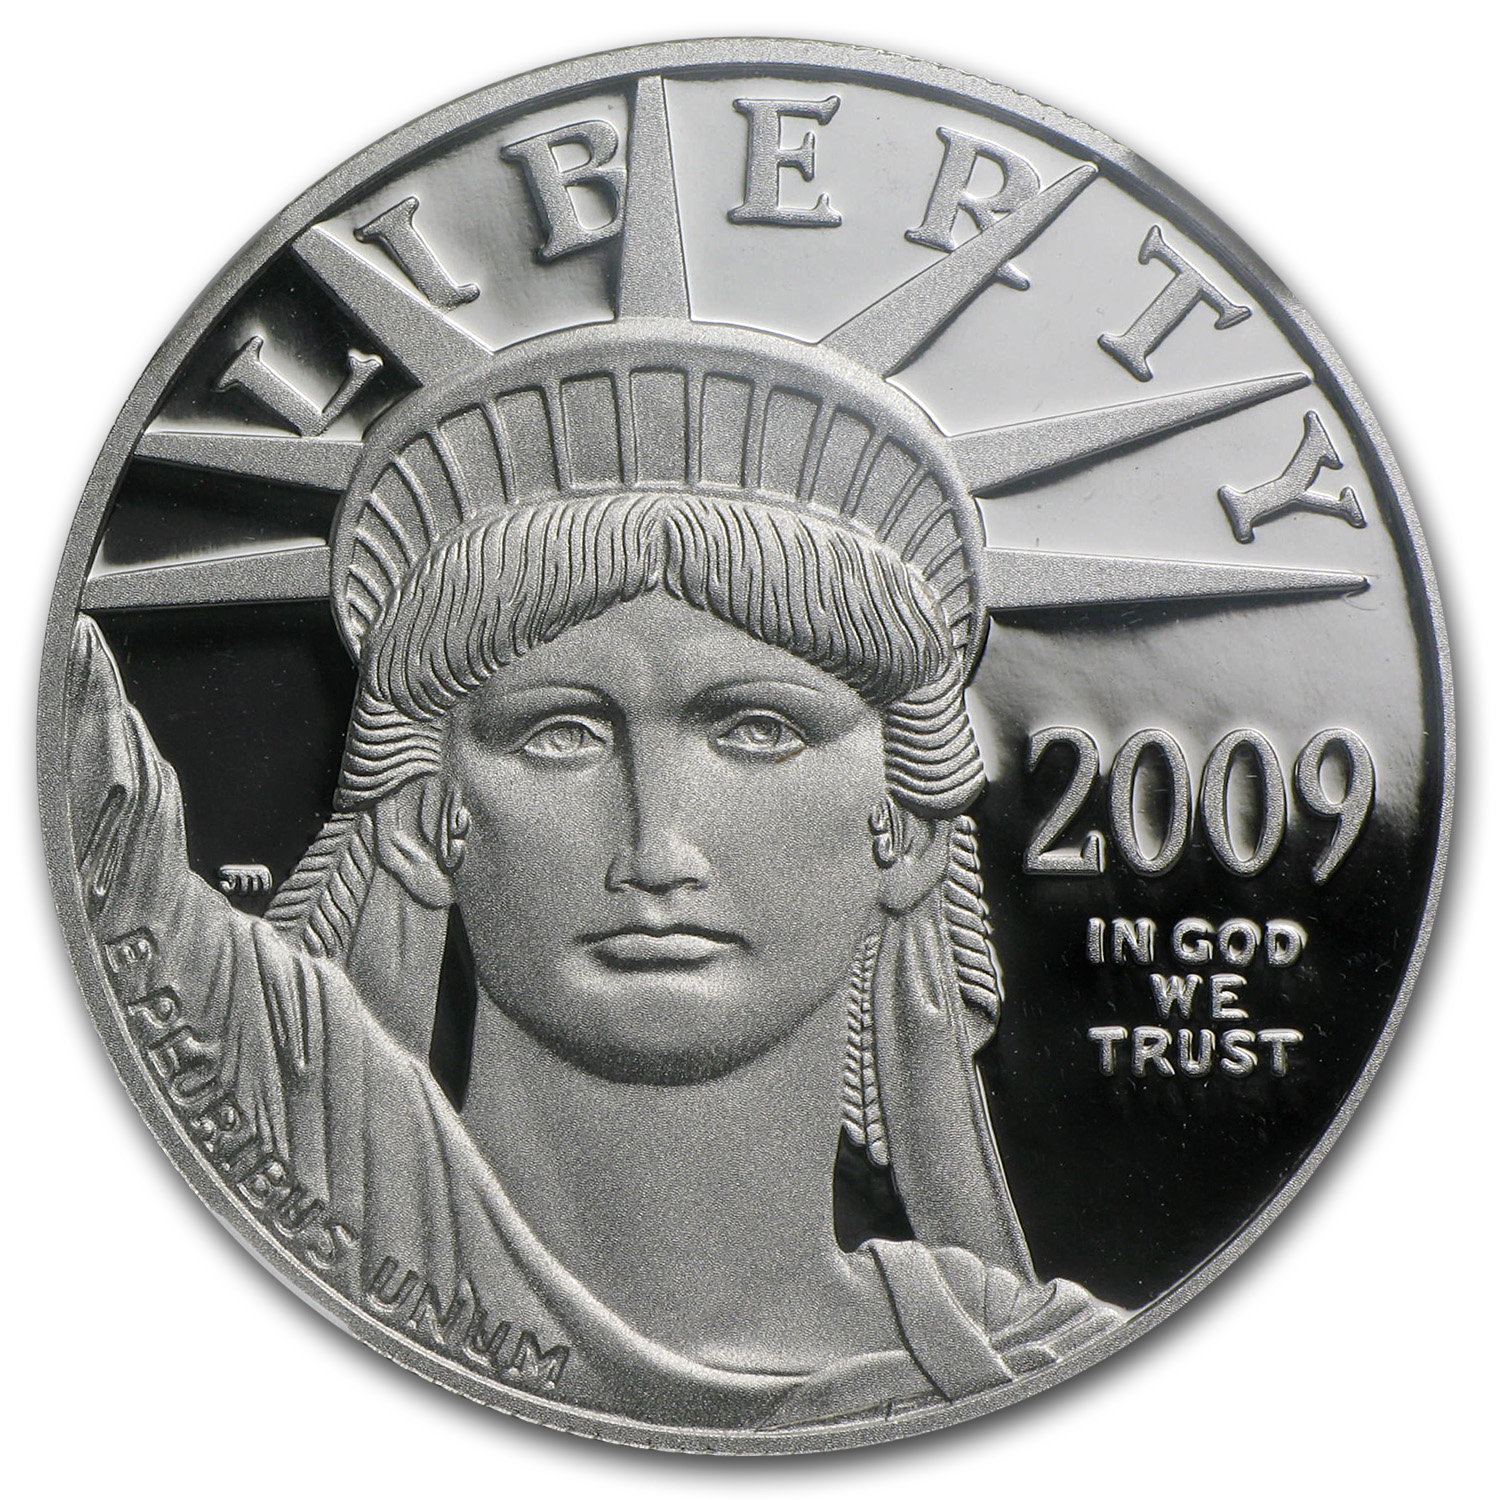 2009-W 1 oz Proof Platinum American Eagle PF-70 UCAM NGC